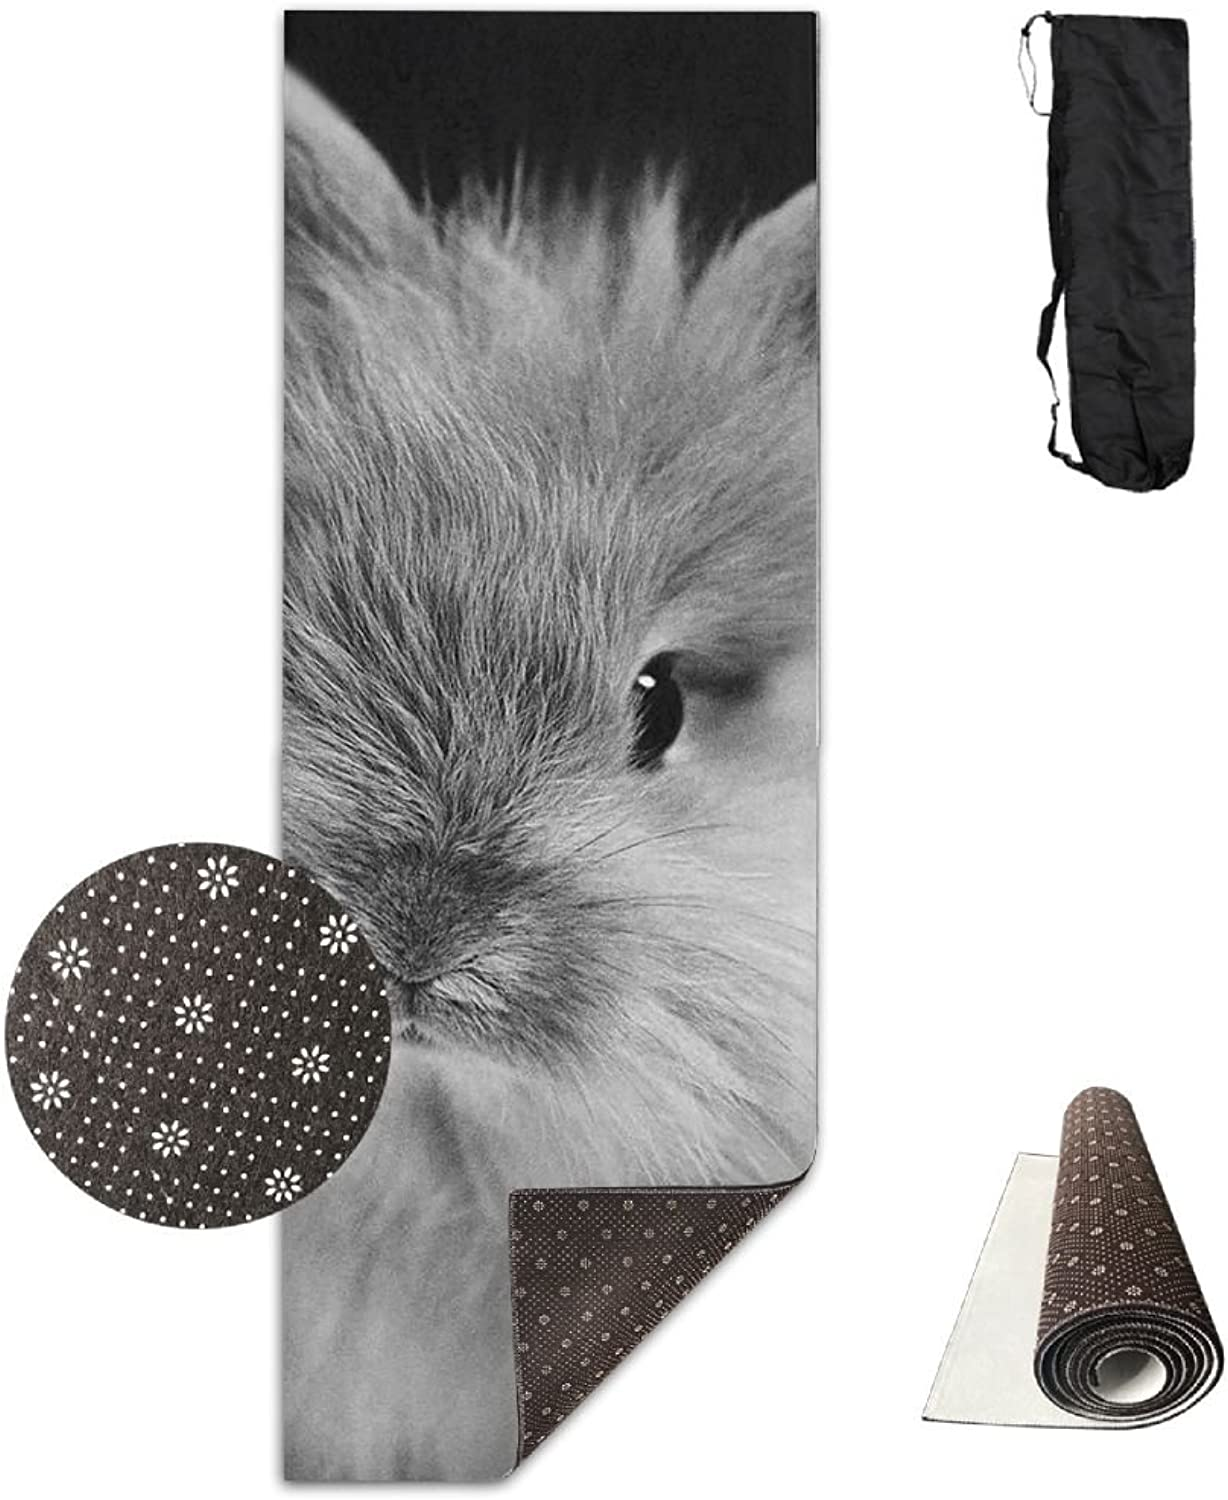 Gym Mat Grey Rabbit Fitness High Density AntiTear Exercise Yoga Mat With Carrying Bag For Exercise,Pilates